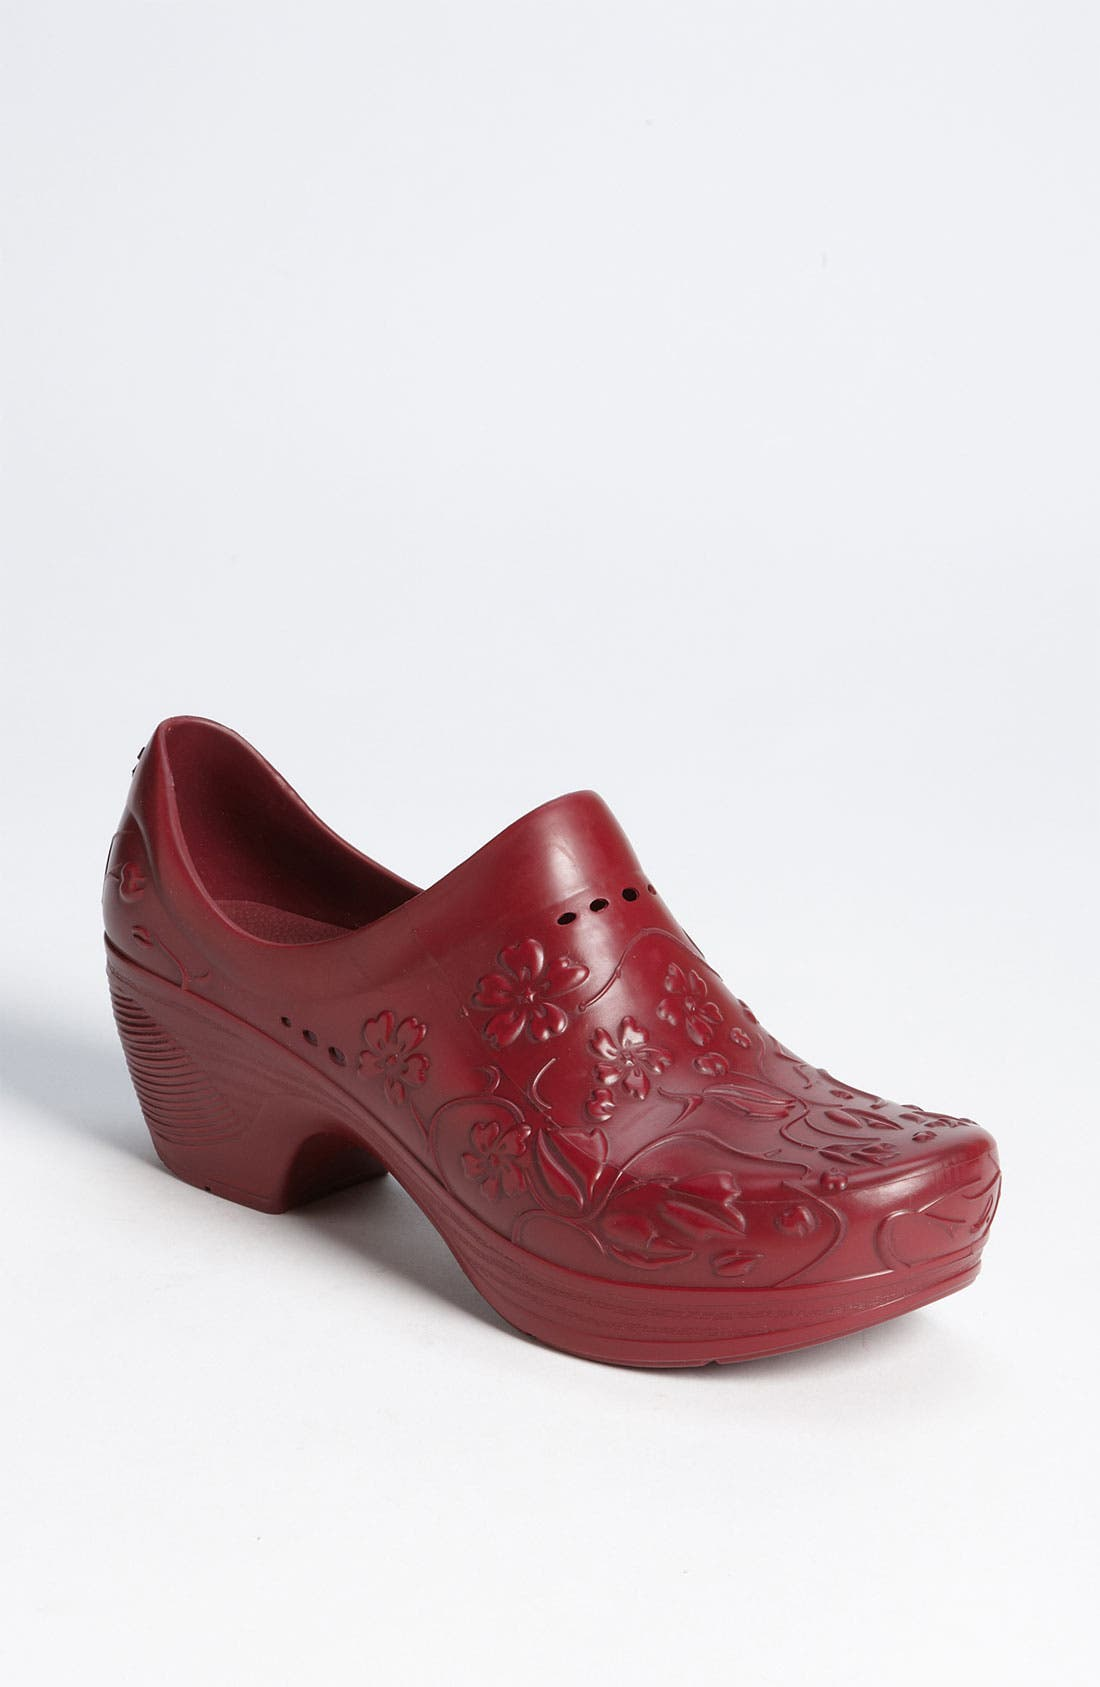 Alternate Image 1 Selected - Dansko 'Pixie' Clog